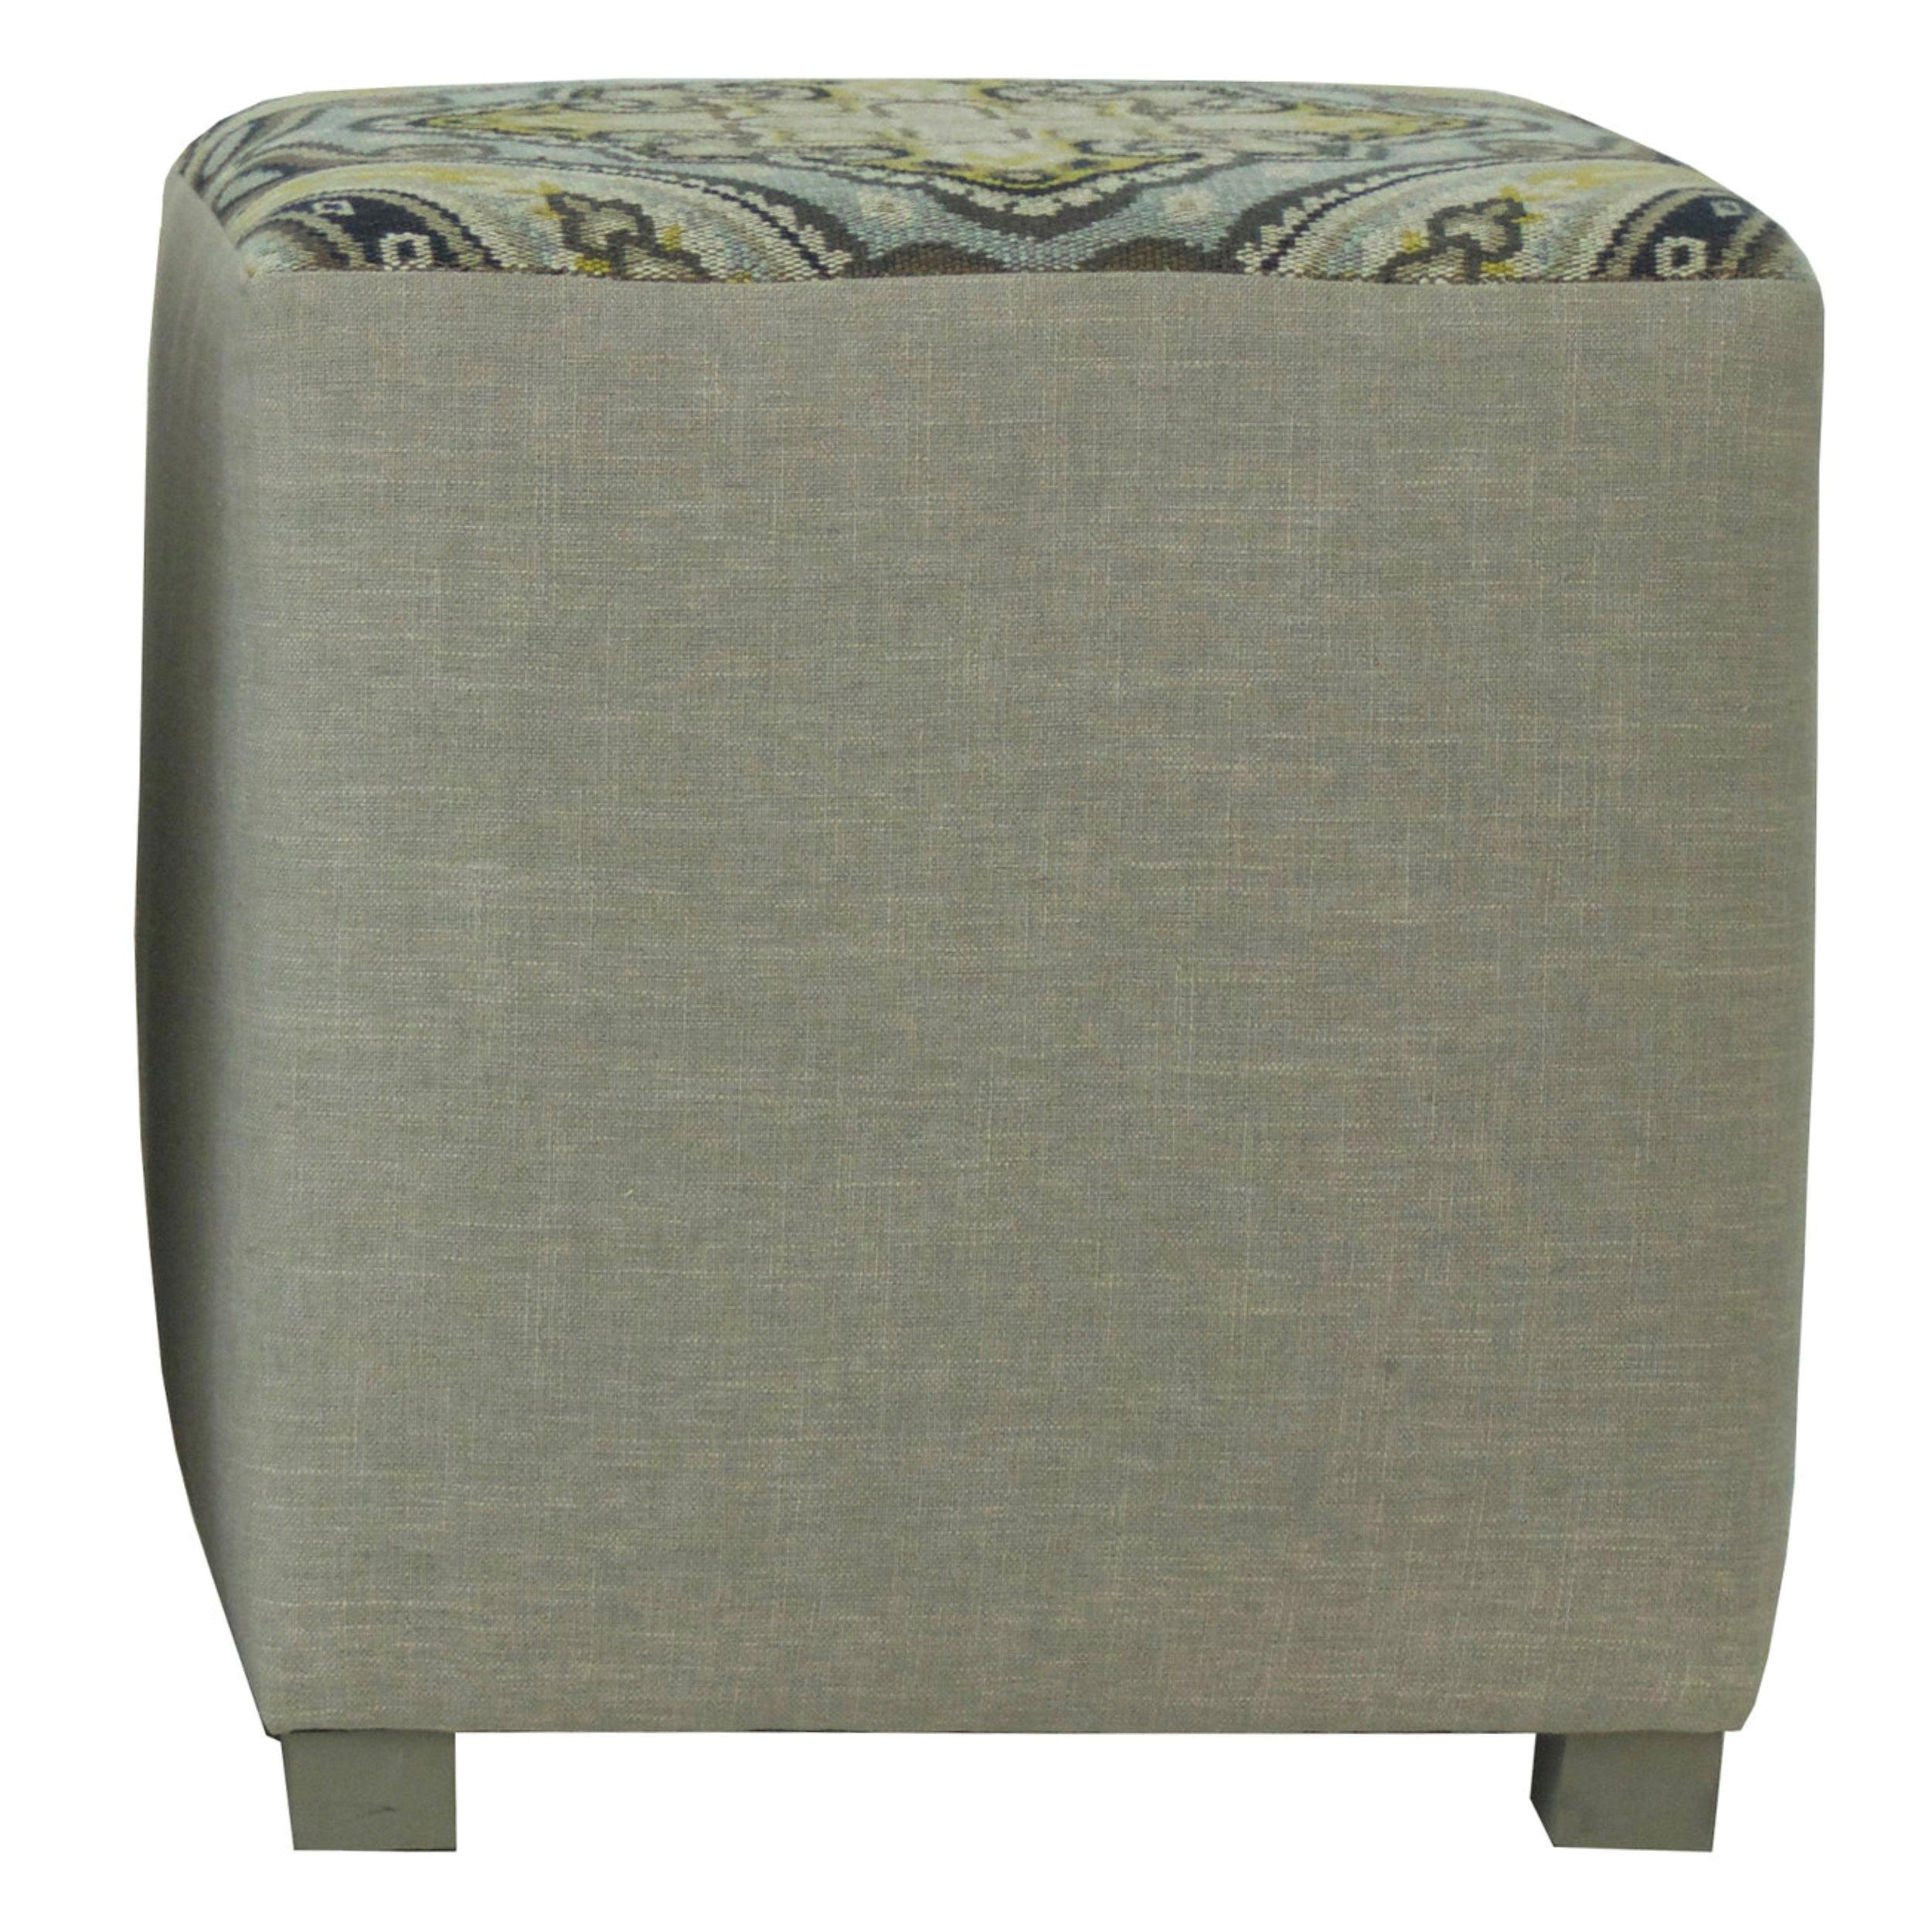 Upholstered Cube Ottoman